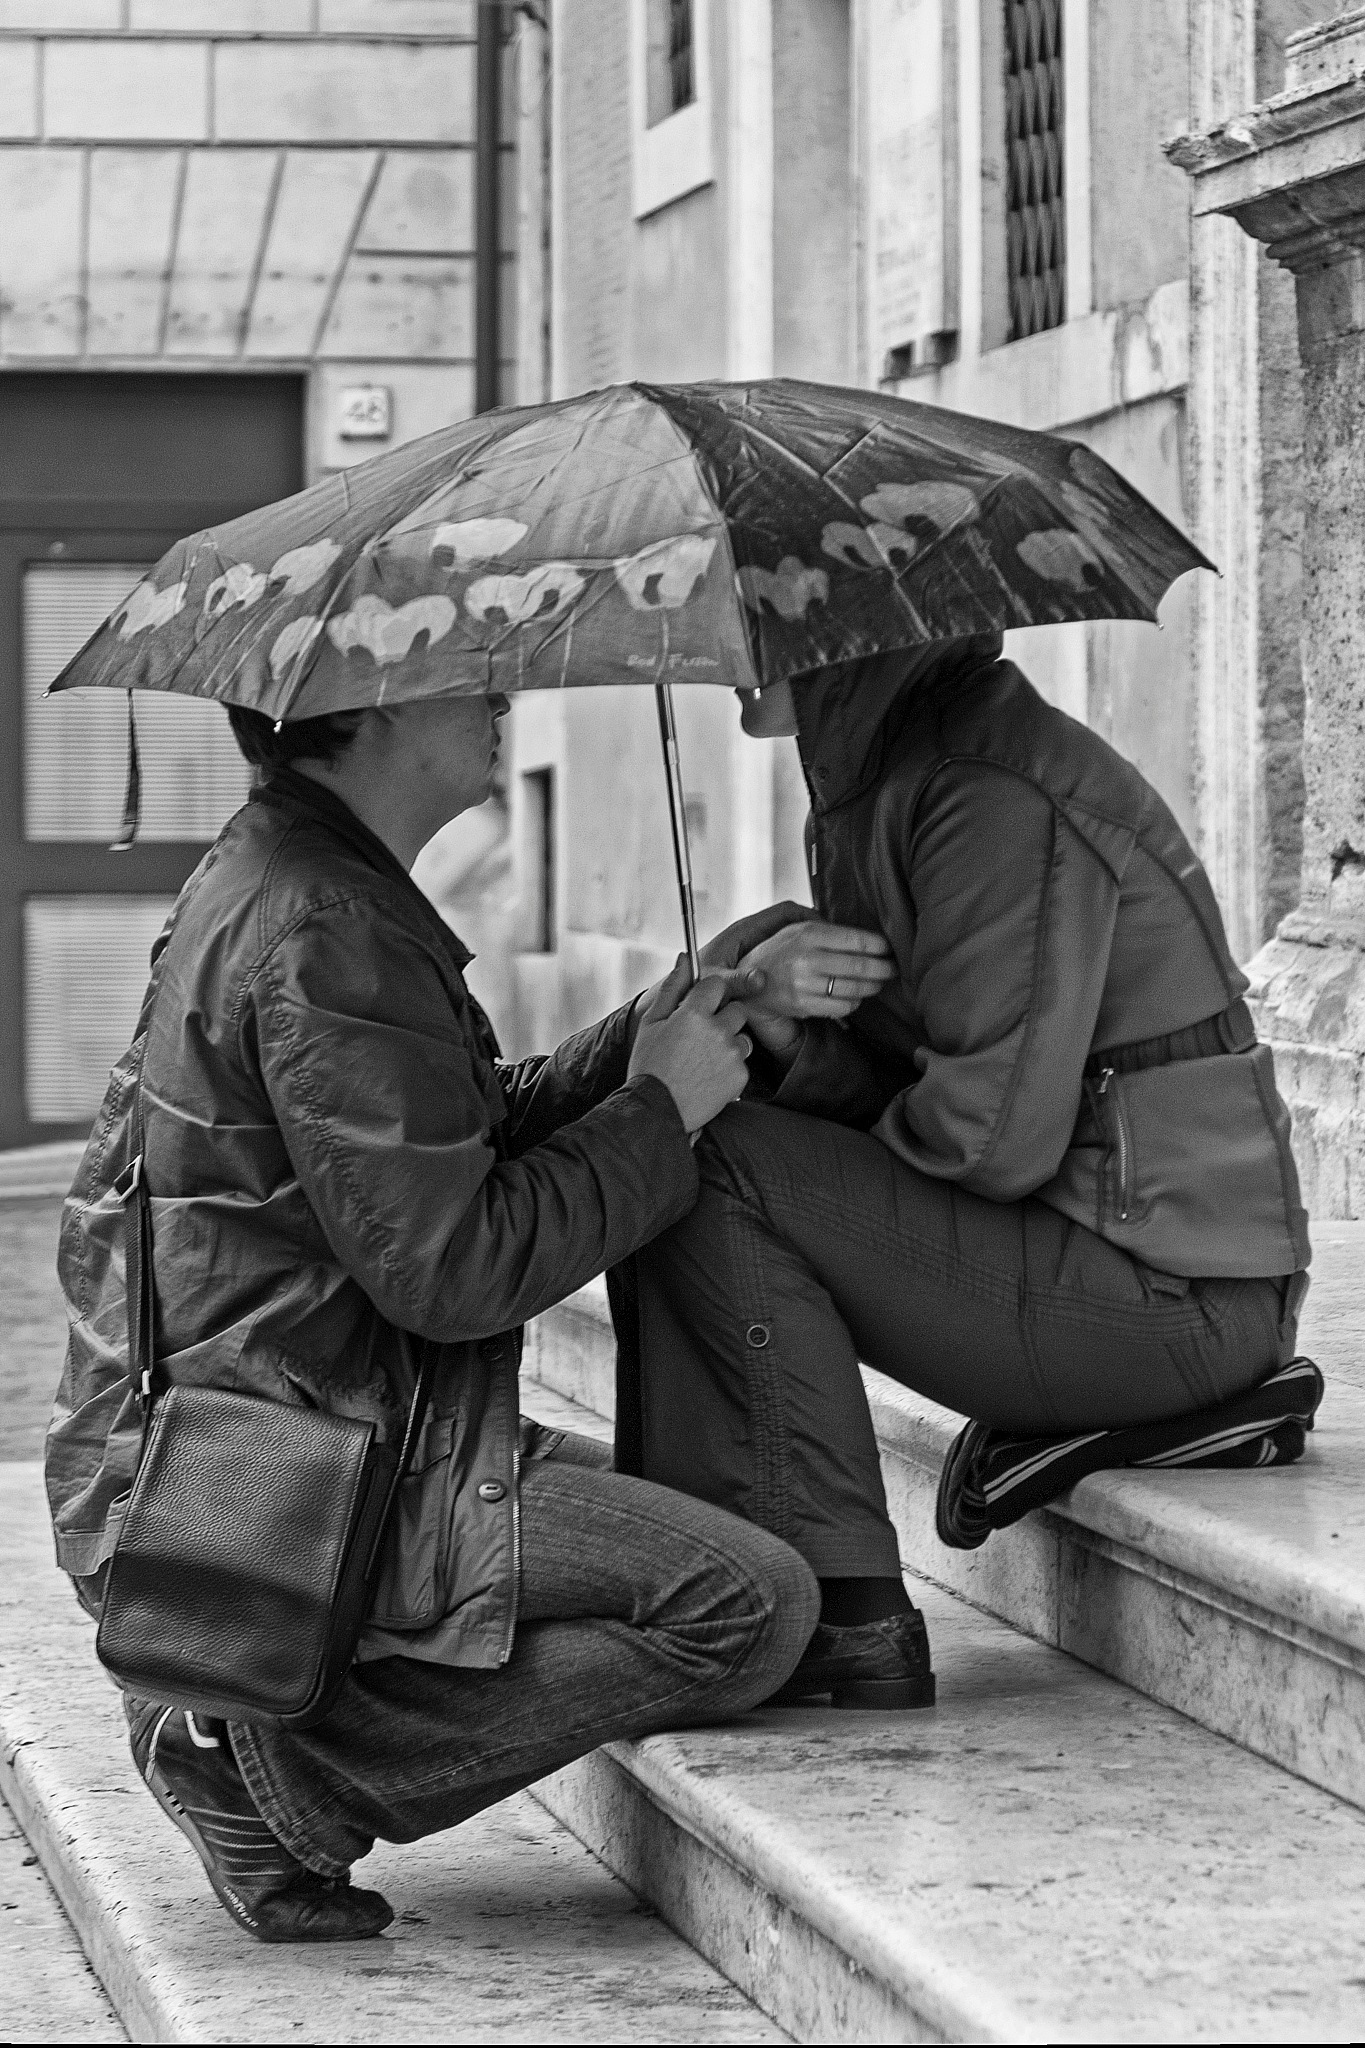 umbrella Love by GJ Besselink